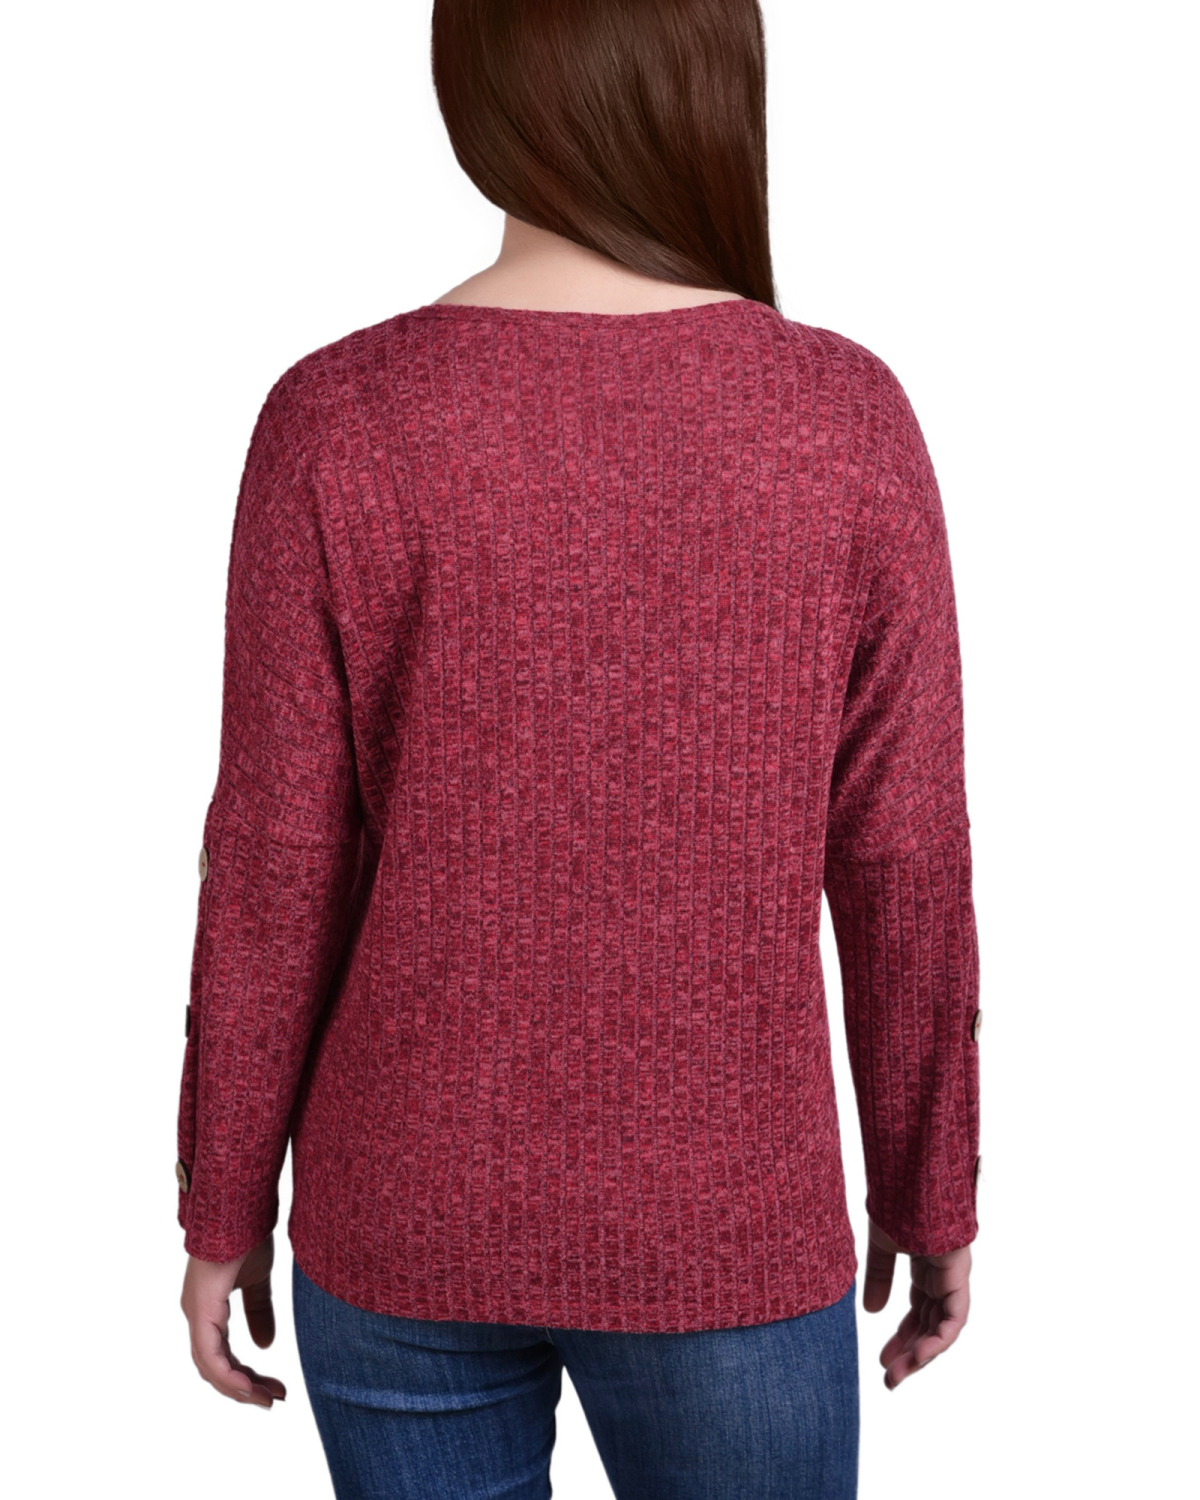 Long Sleeve Cowl Neck Pullover With Buttons